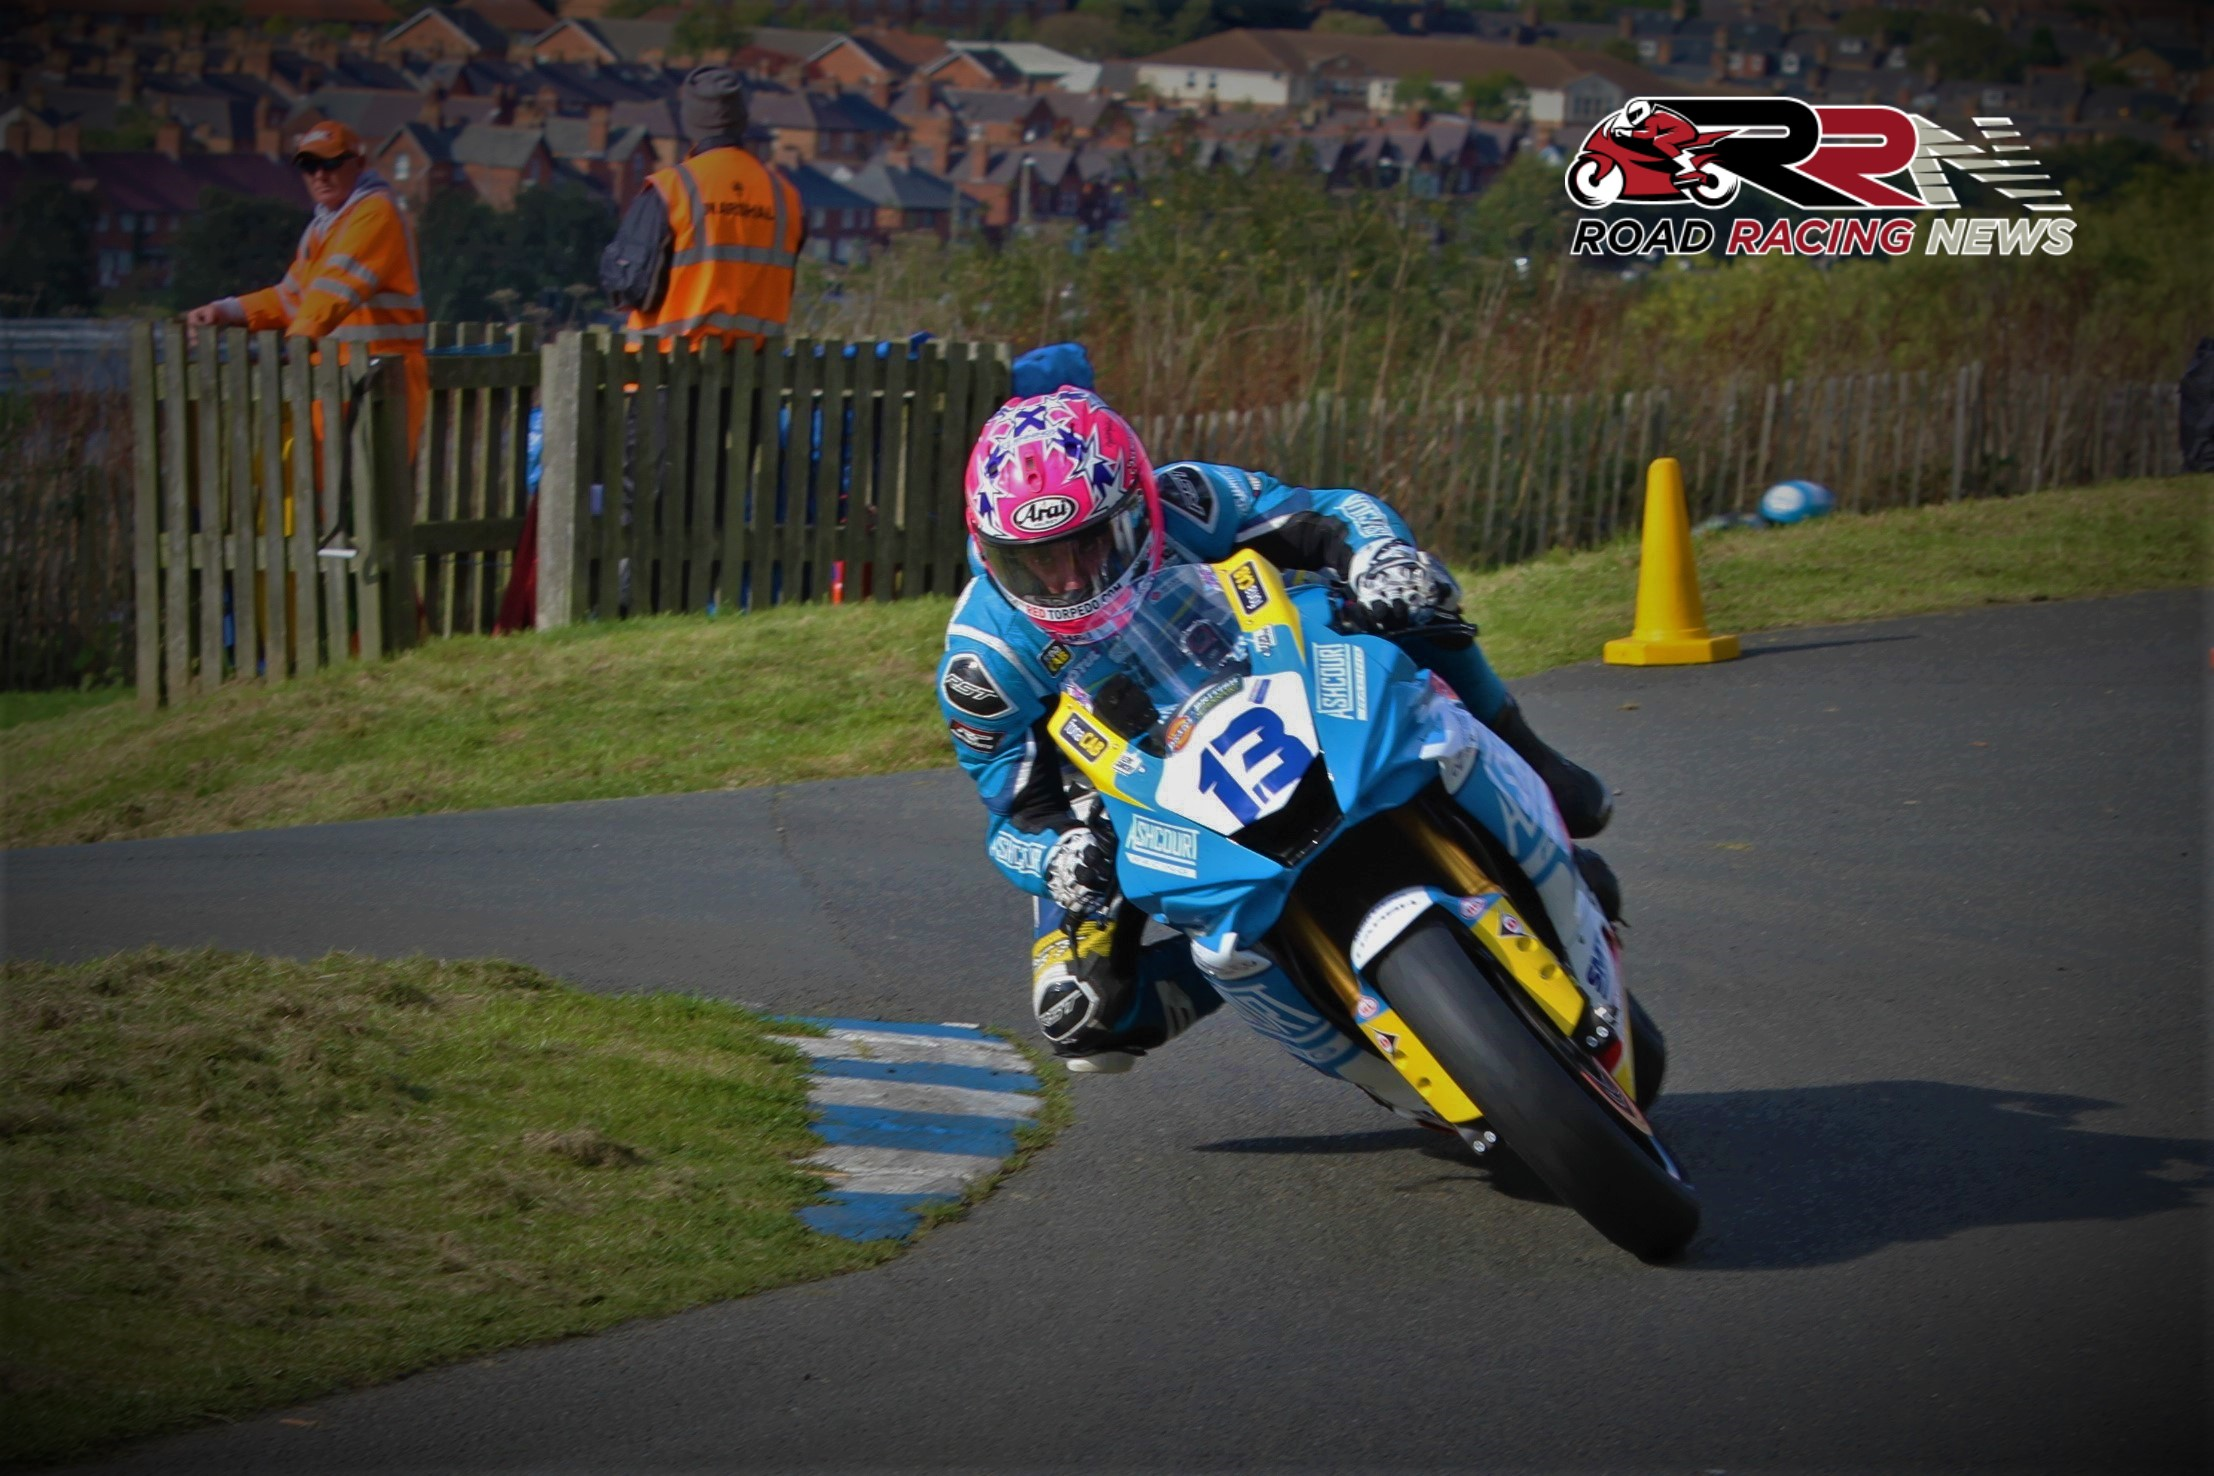 Barry Sheene Classic Preview – Part 2 – Supersport Races